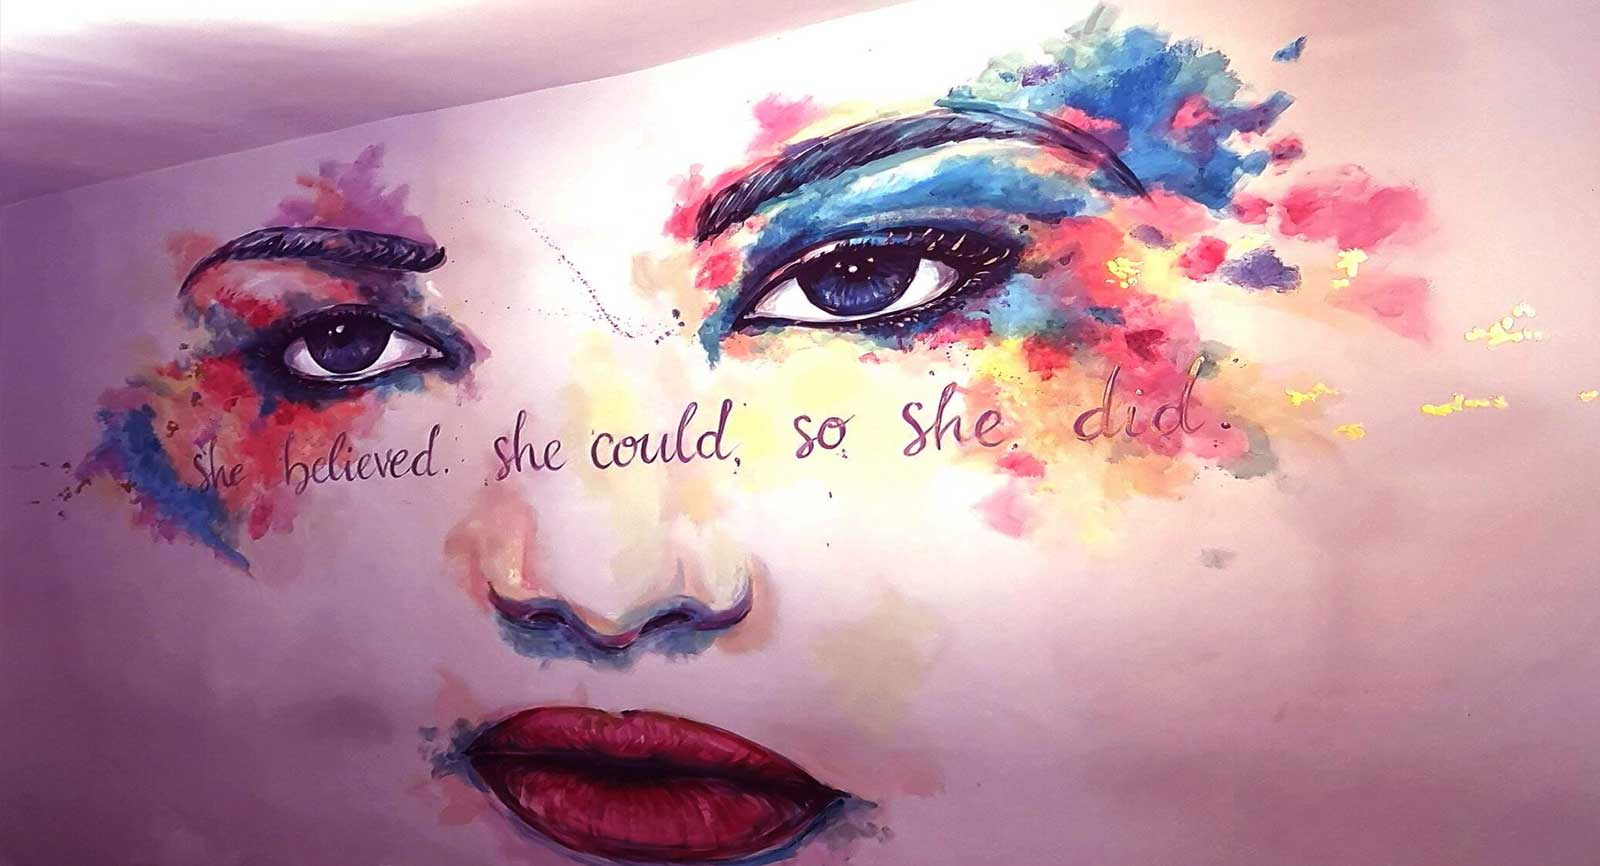 How Hand-painted Mural Art Can Turn Away Depression